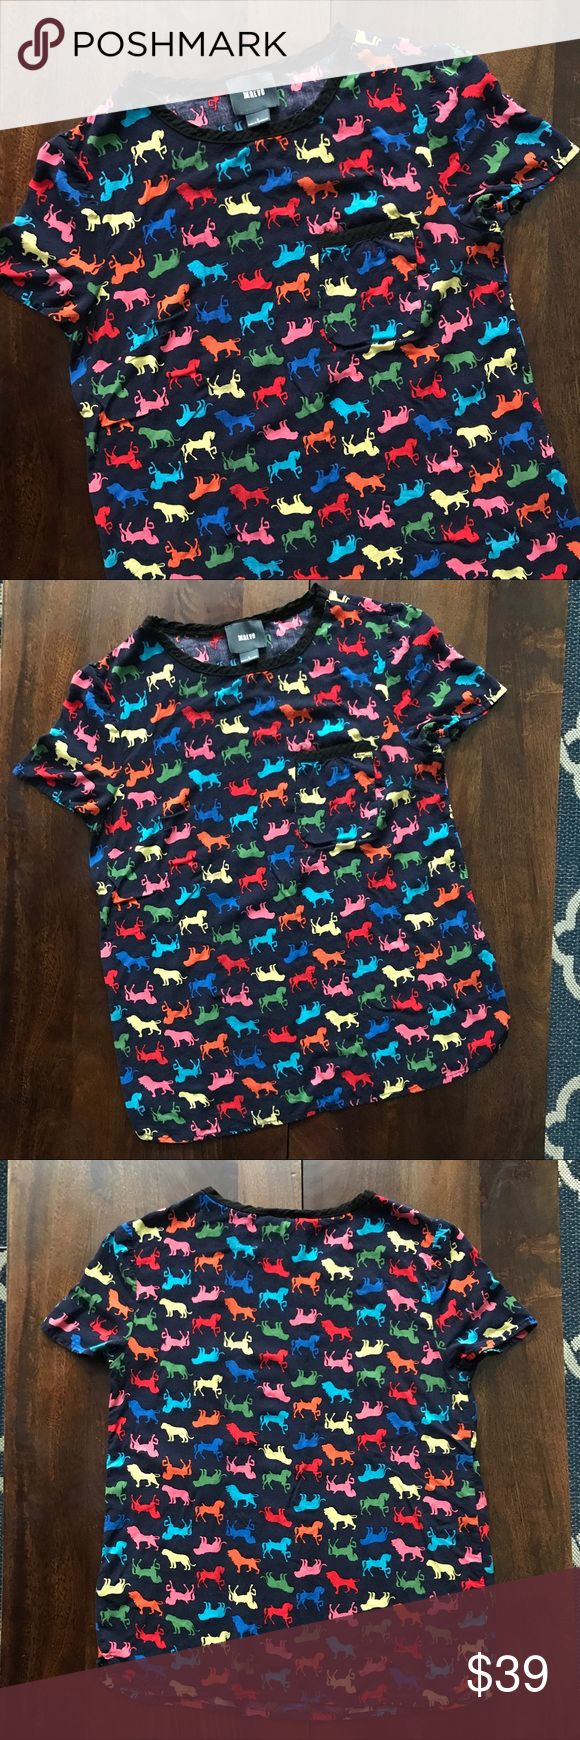 """Anthropologie • carousel horse and lion tee Anthropologie • Maeve • navy tee with colorful carousel horses and lions • so soft! • all measurements were taken with the garment flat and are approx : pit to pit 17""""   length 23.5"""" Anthropologie Tops Tees - Short Sleeve"""